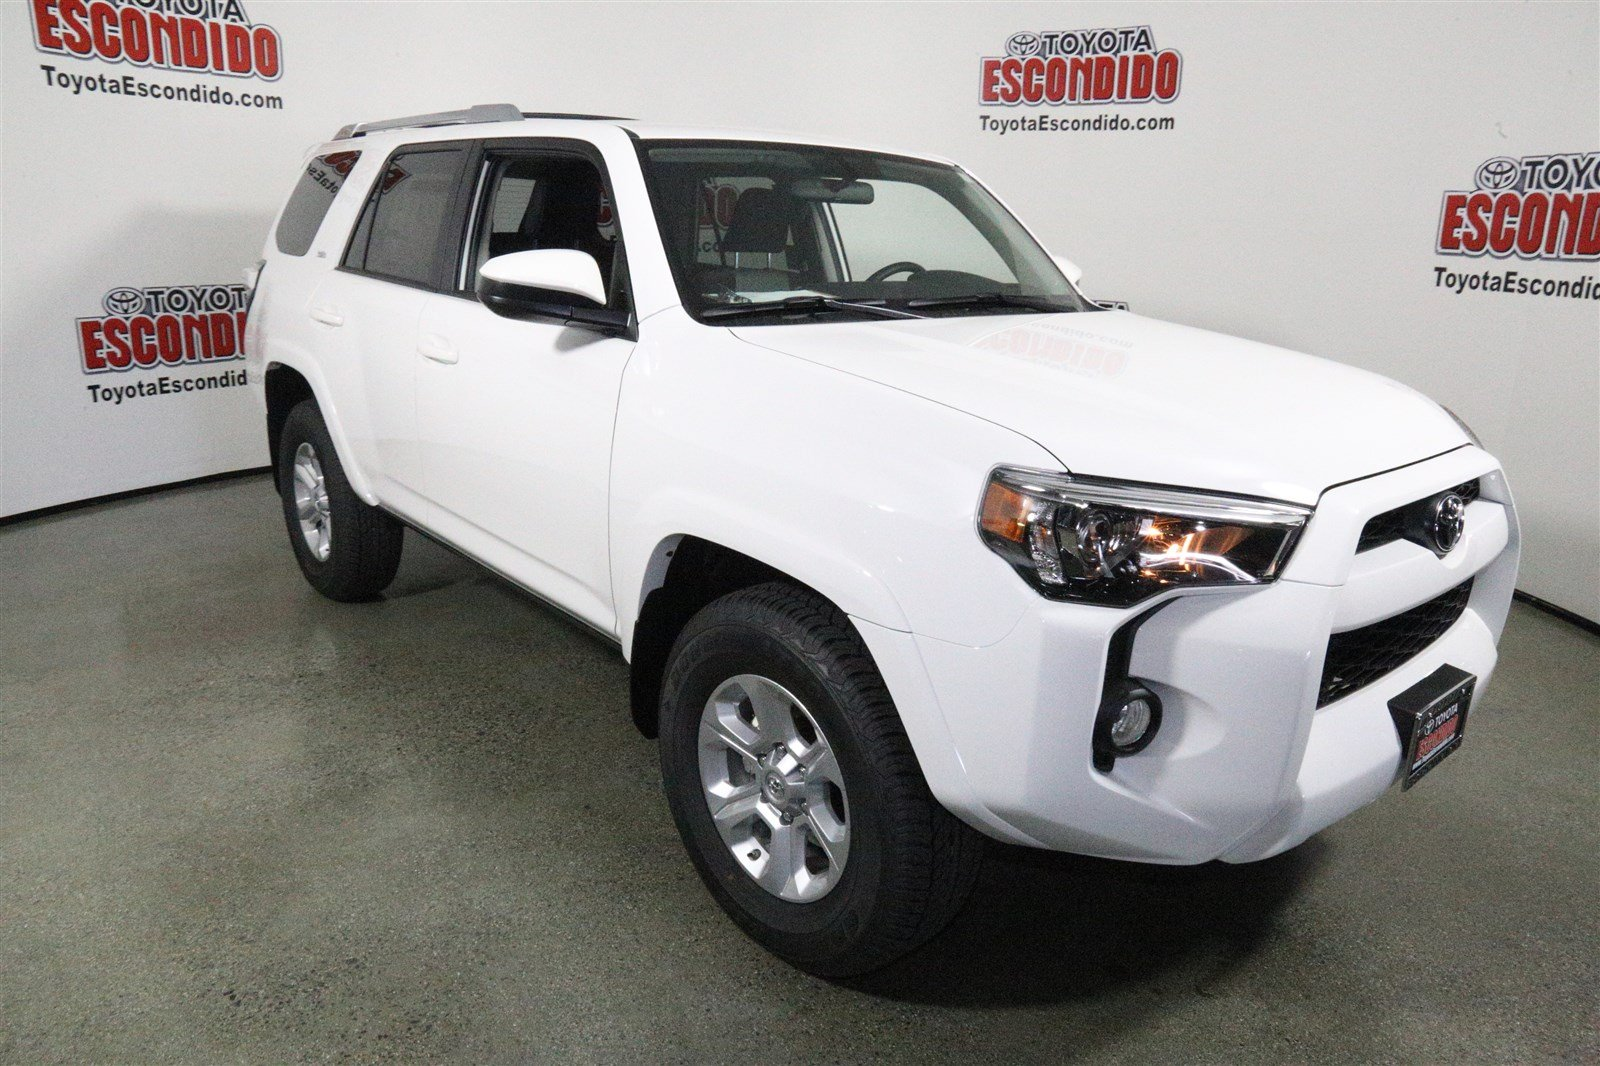 new 2017 toyota 4runner sr5 sport utility in escondido 1014891 toyota escondido. Black Bedroom Furniture Sets. Home Design Ideas